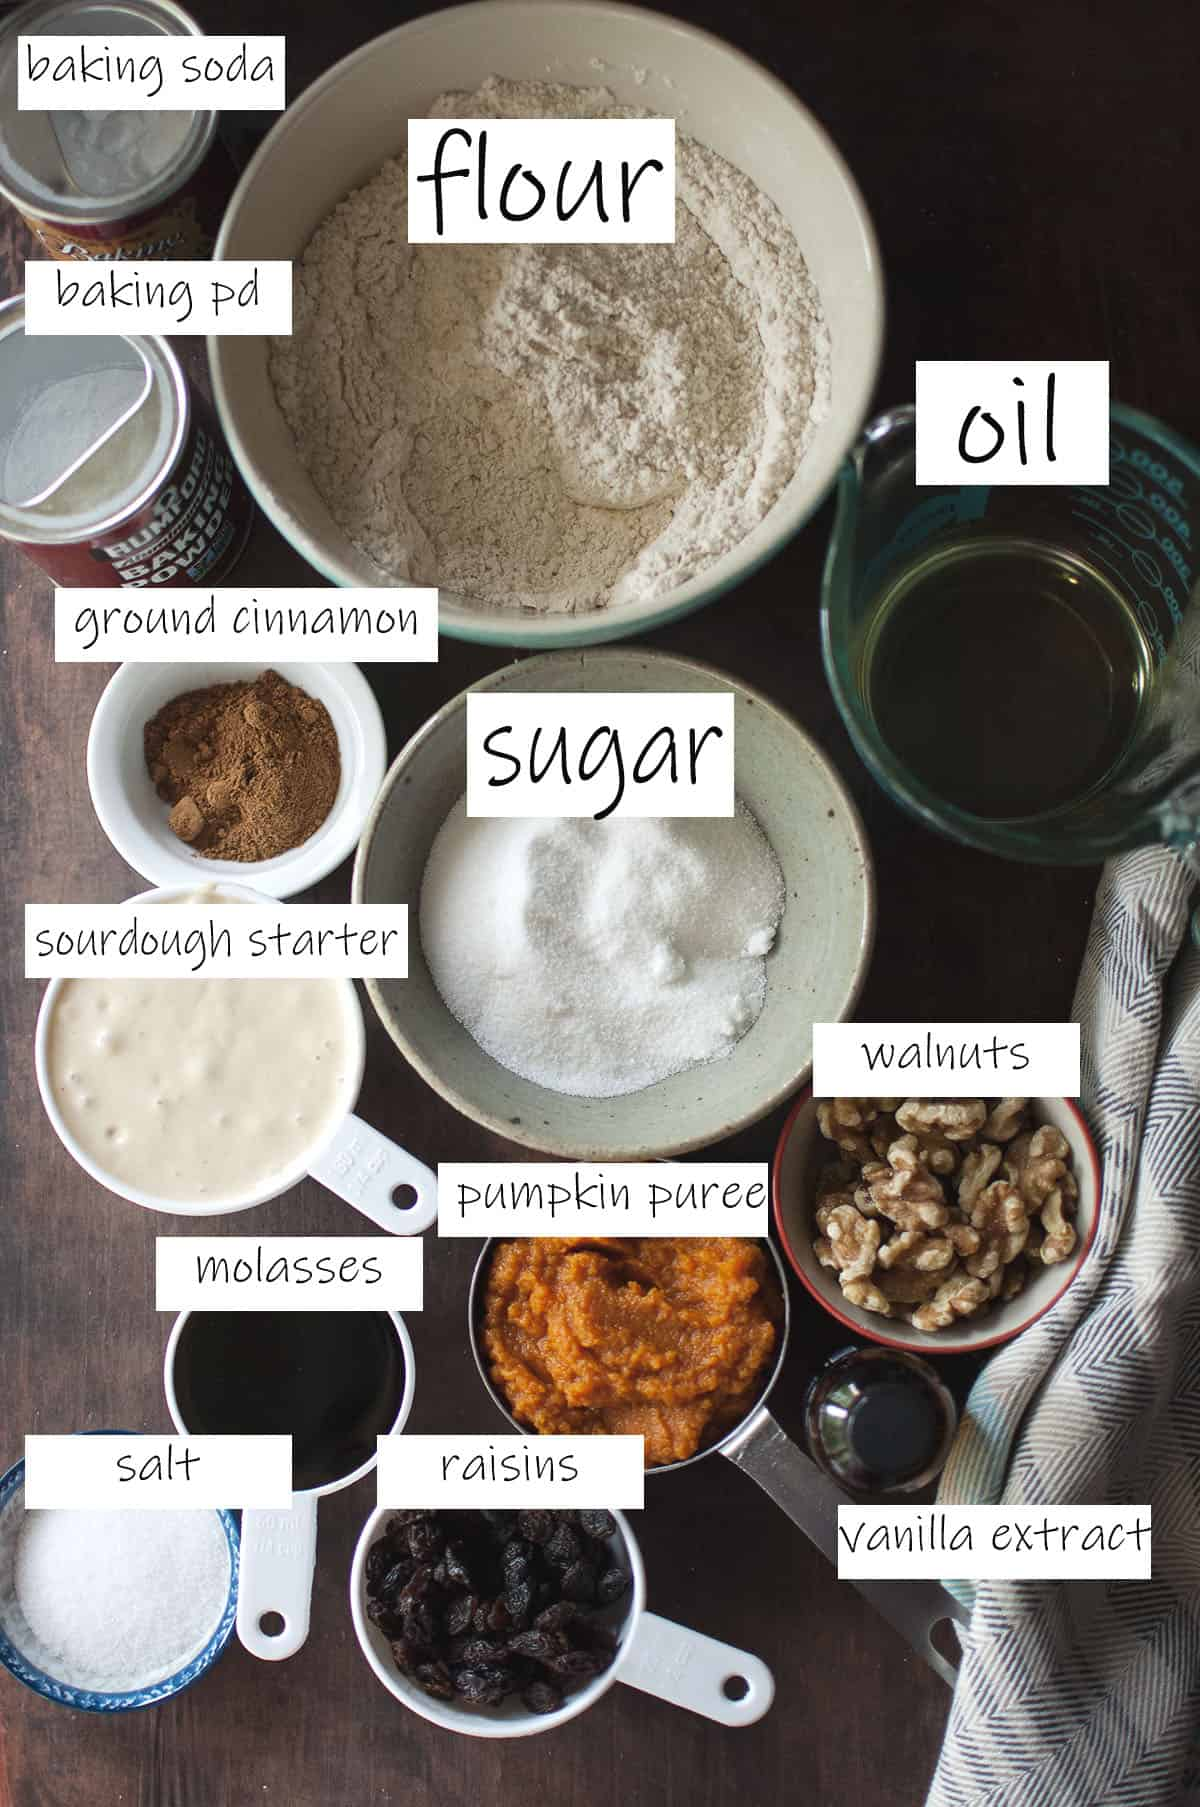 Ingredients needed to make the recipe - refer to recipe card for details